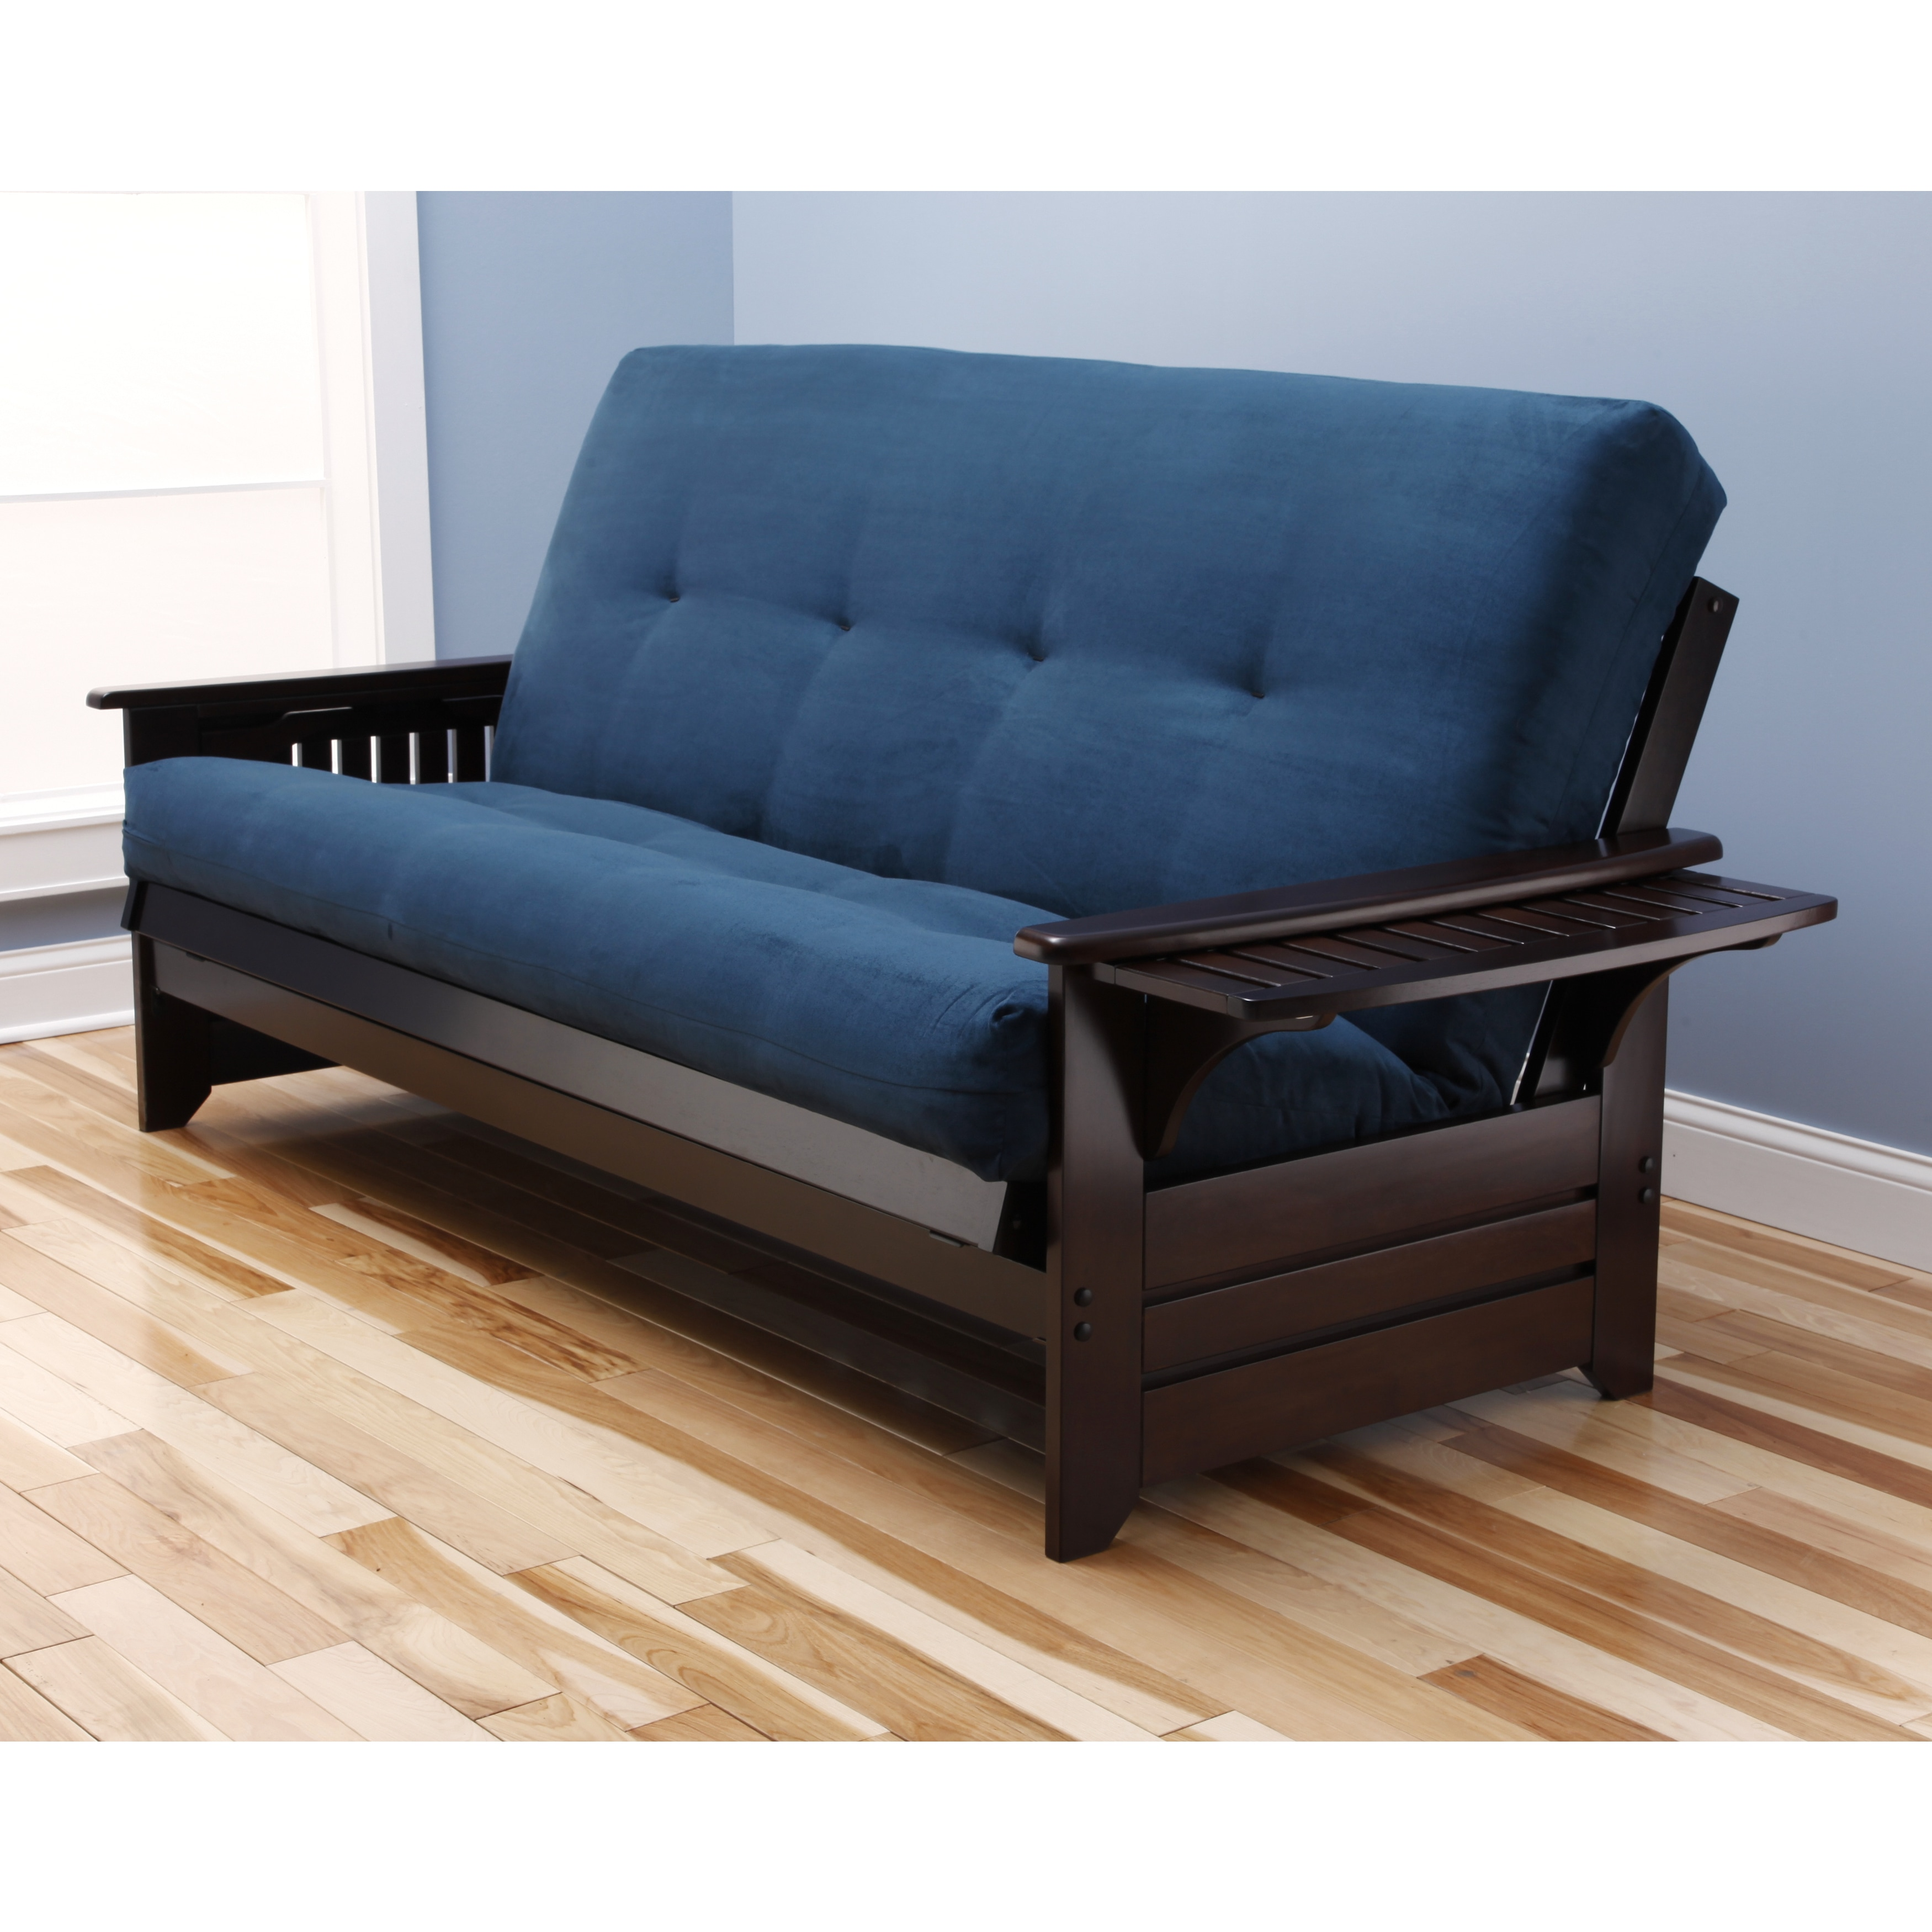 sofa sleeper comfortable loveseat standard furniture futon sofas best ashley bed couch